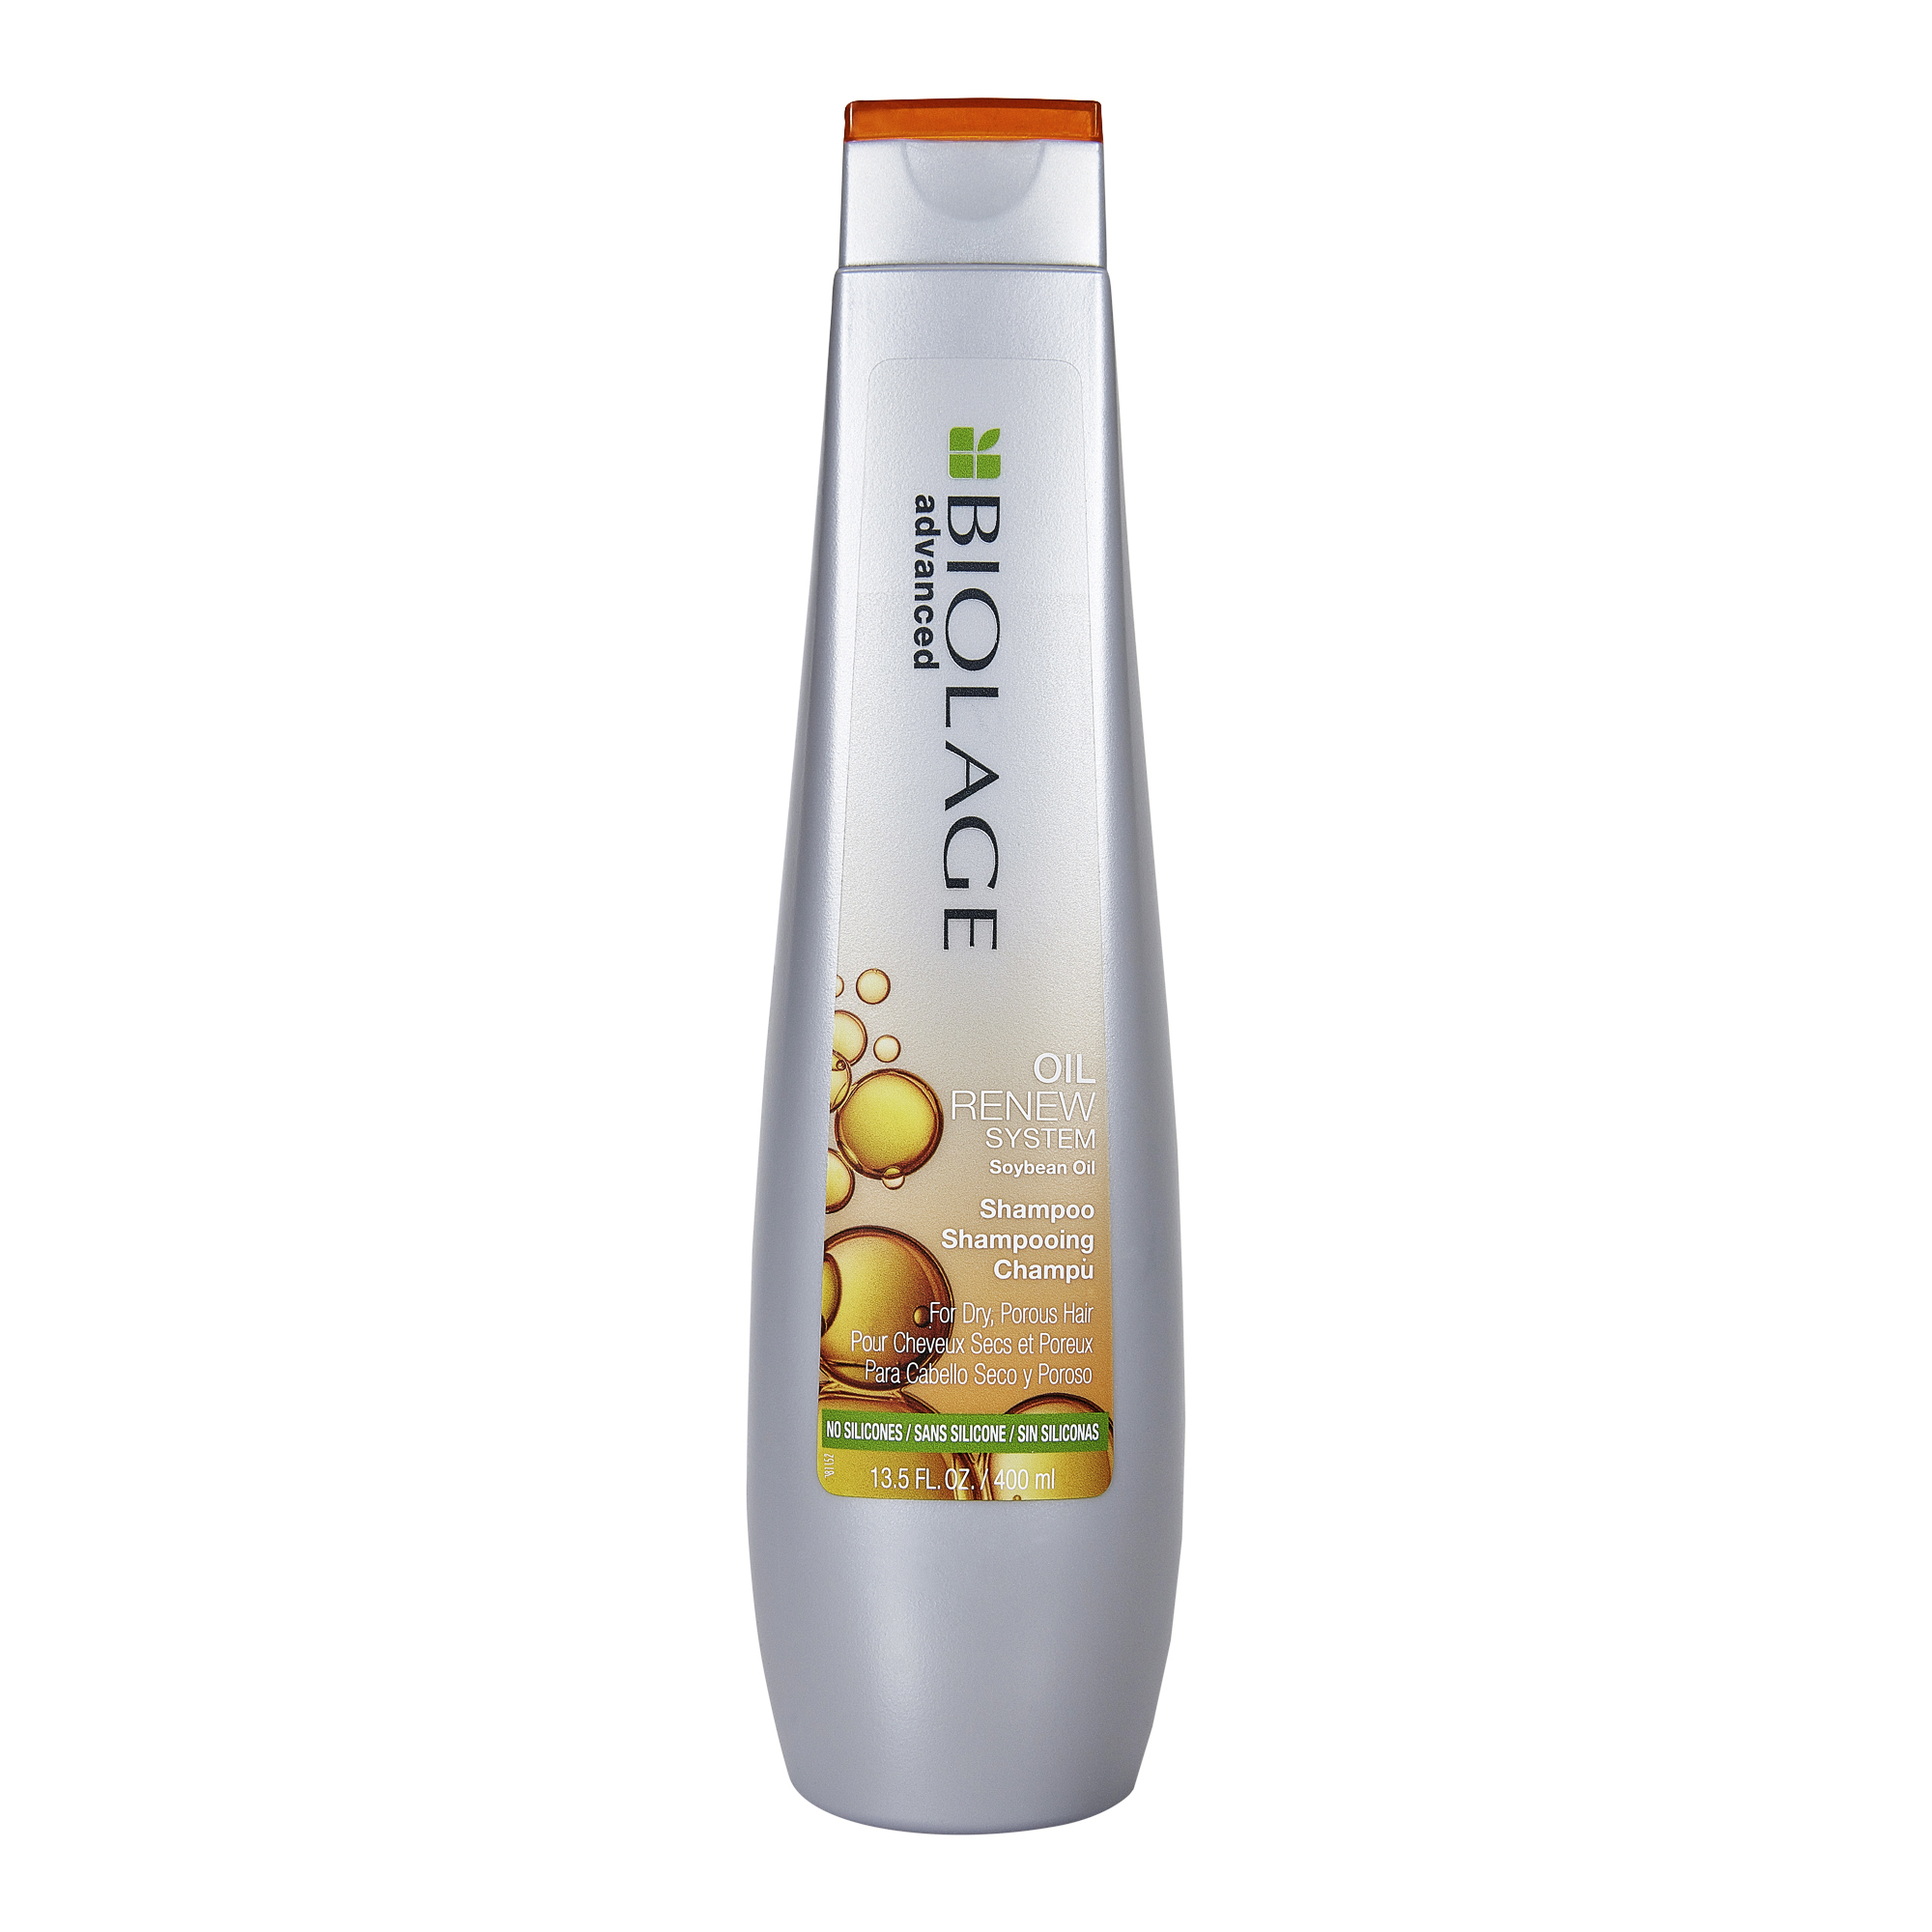 Treat Dry Hair with Biolage's New Advanced Oil Renew System